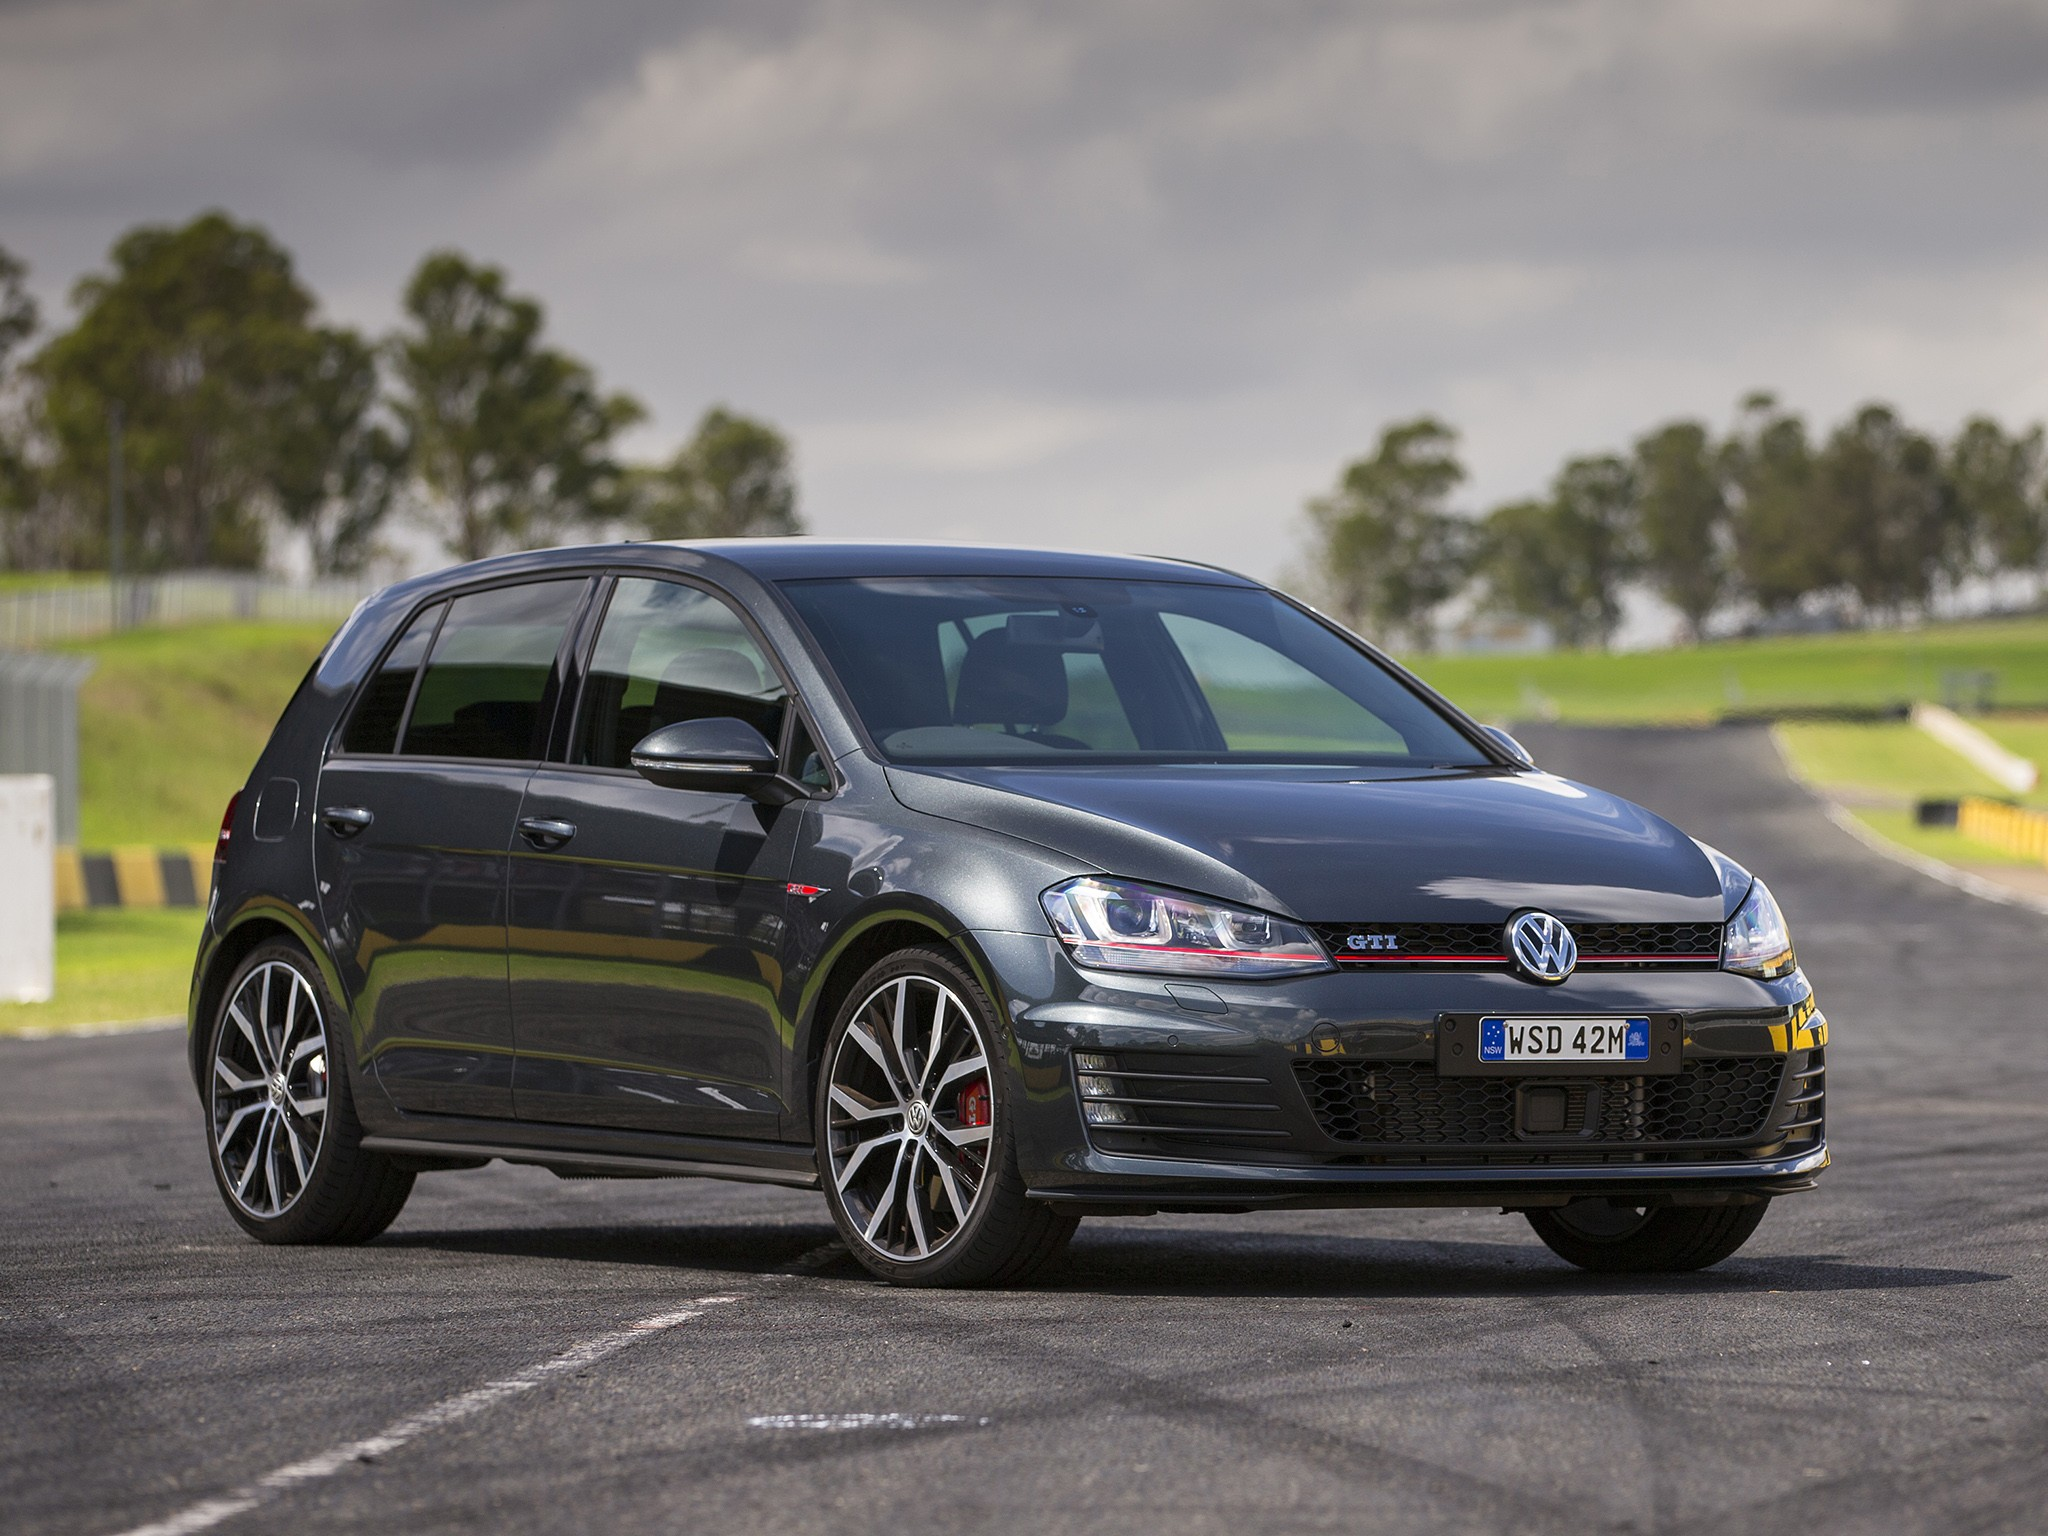 volkswagen golf gti 2013 2014 2015 2016 2017 autoevolution. Black Bedroom Furniture Sets. Home Design Ideas